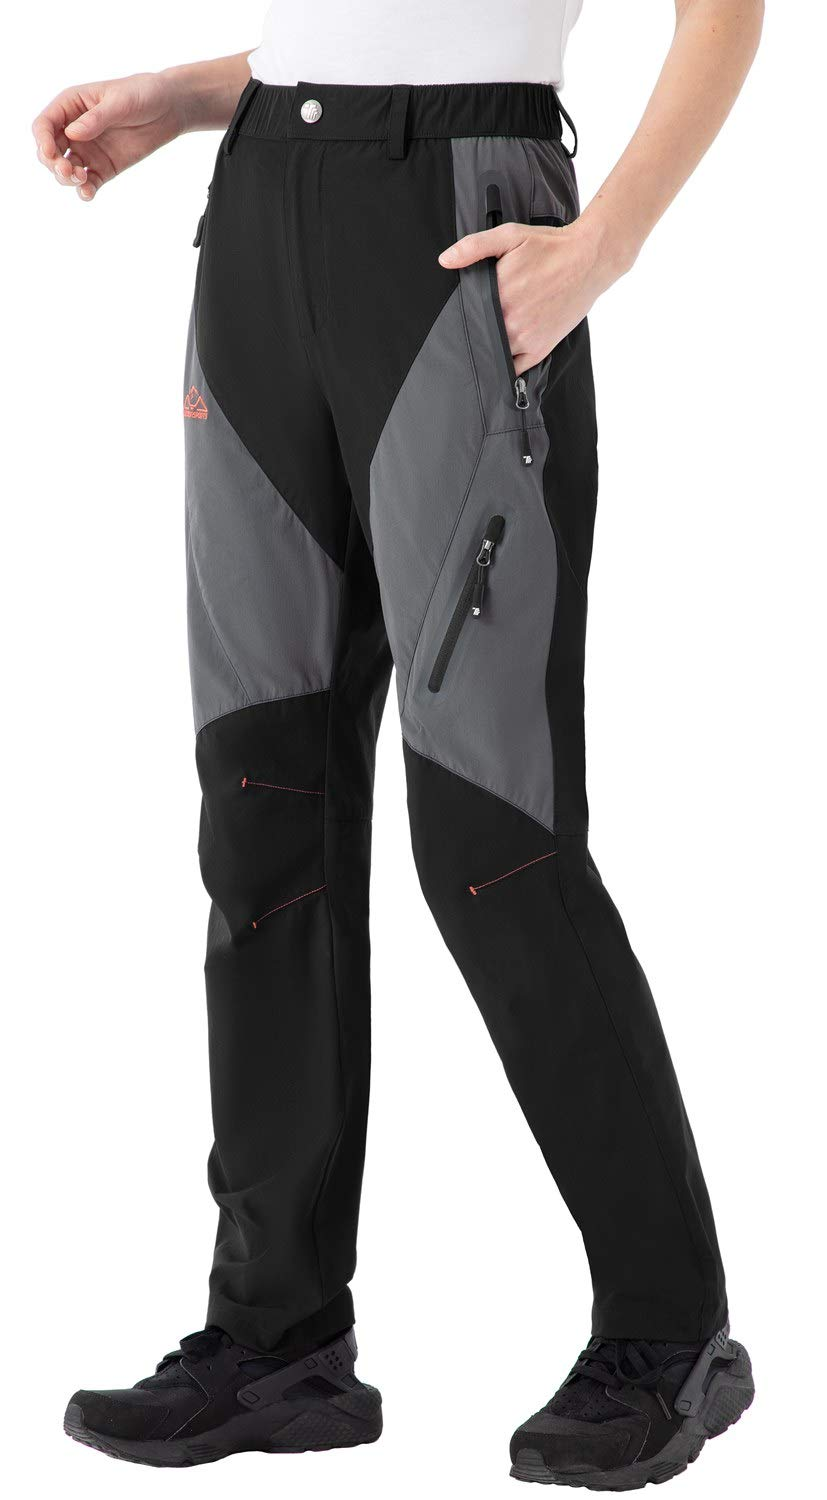 Rdruko Women's Hiking Pants Water-Resistant Quick Dry UPF 50 Travel Camping Work Pants Zipper Pockets